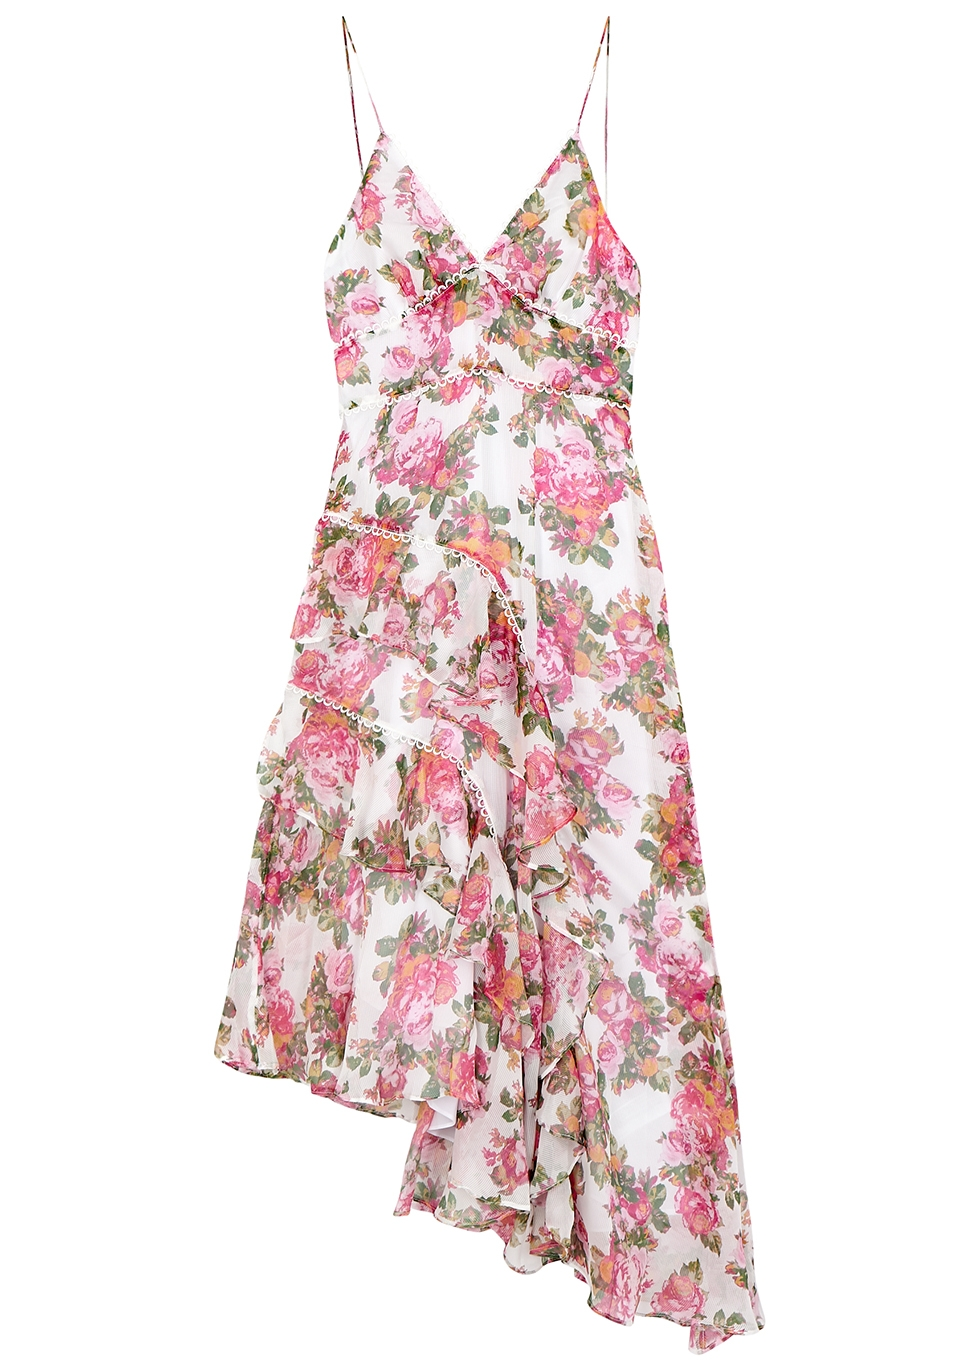 Oblivion floral georgette midi dress - KEEPSAKE